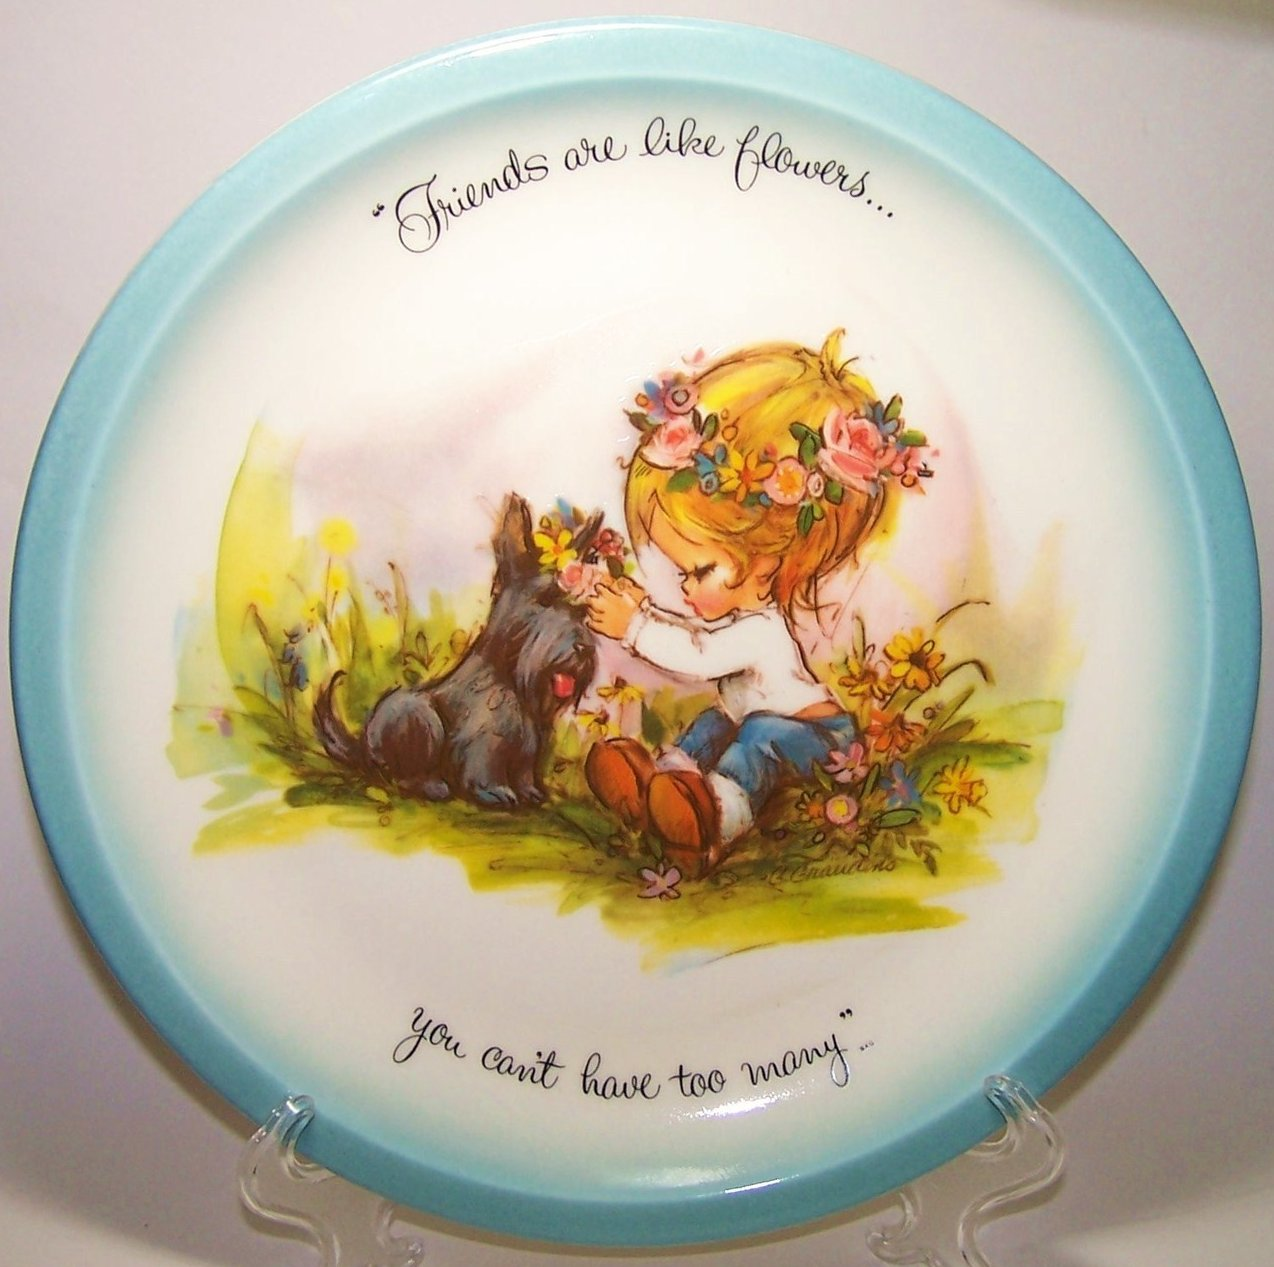 Image 4 of American Greetings Collector Plate Gigi Friends Are Like Flowers